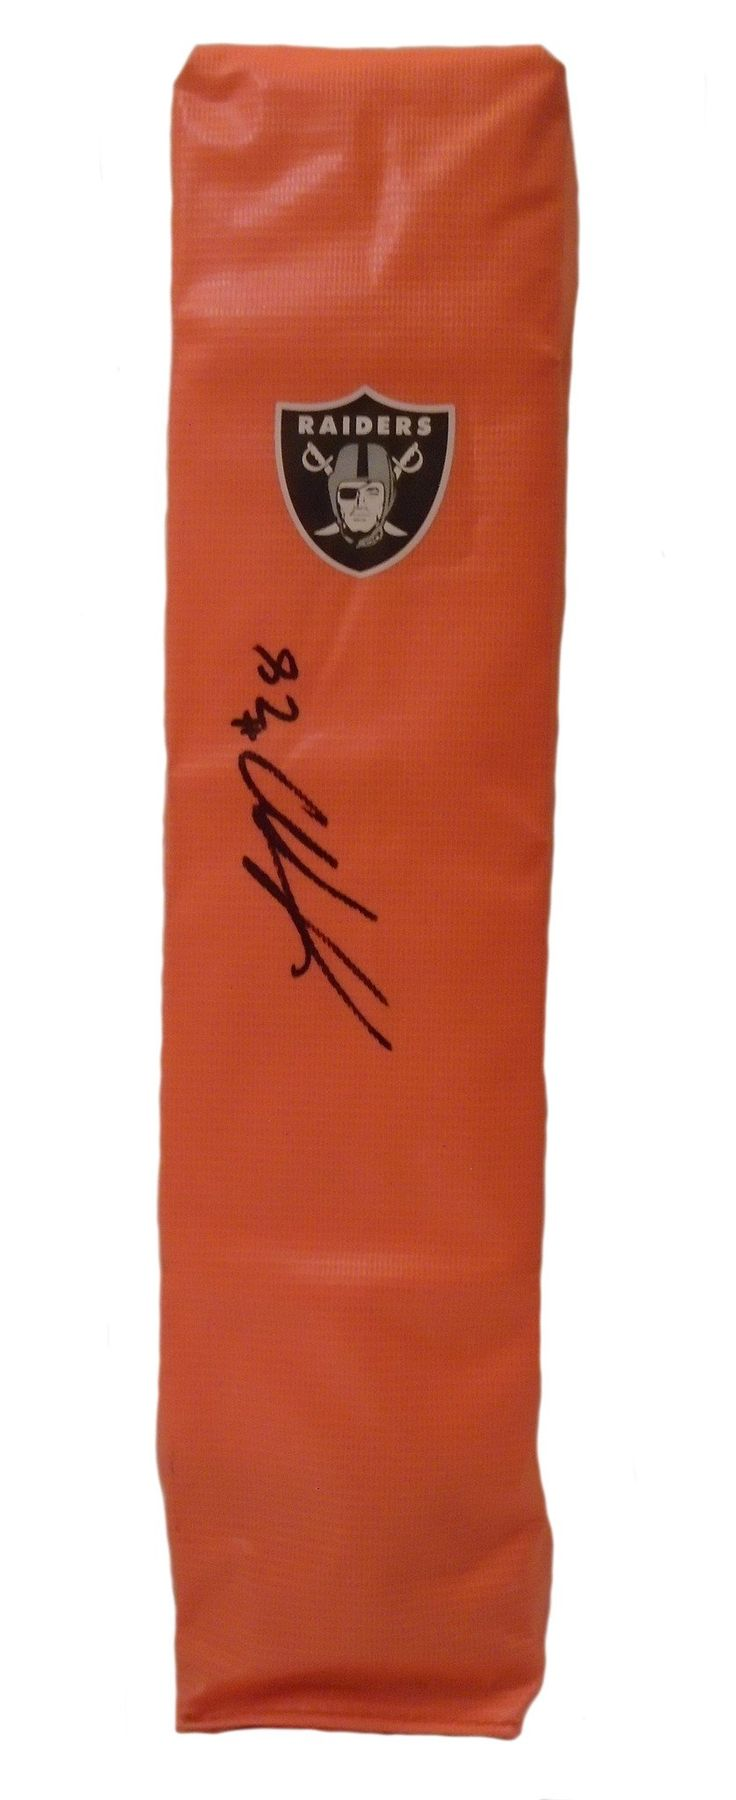 Latavius Murray Autographed Oakland Raiders Full Size Football End Zone Touchdown Pylon. This is a brand-new custom Latavius Murray signed Oakland Raiders full sizefootball end zone pylon. This pylon measures 4inches (Width) X 4inches (Length) X 18inches (Height). Latavius signed the pylonin black sharpie.Check out the photo of Latavius signing for us. ** Proof photo is included for free with purchase. Please click on images to enlarge. Please browse our websitefor additional NFL…